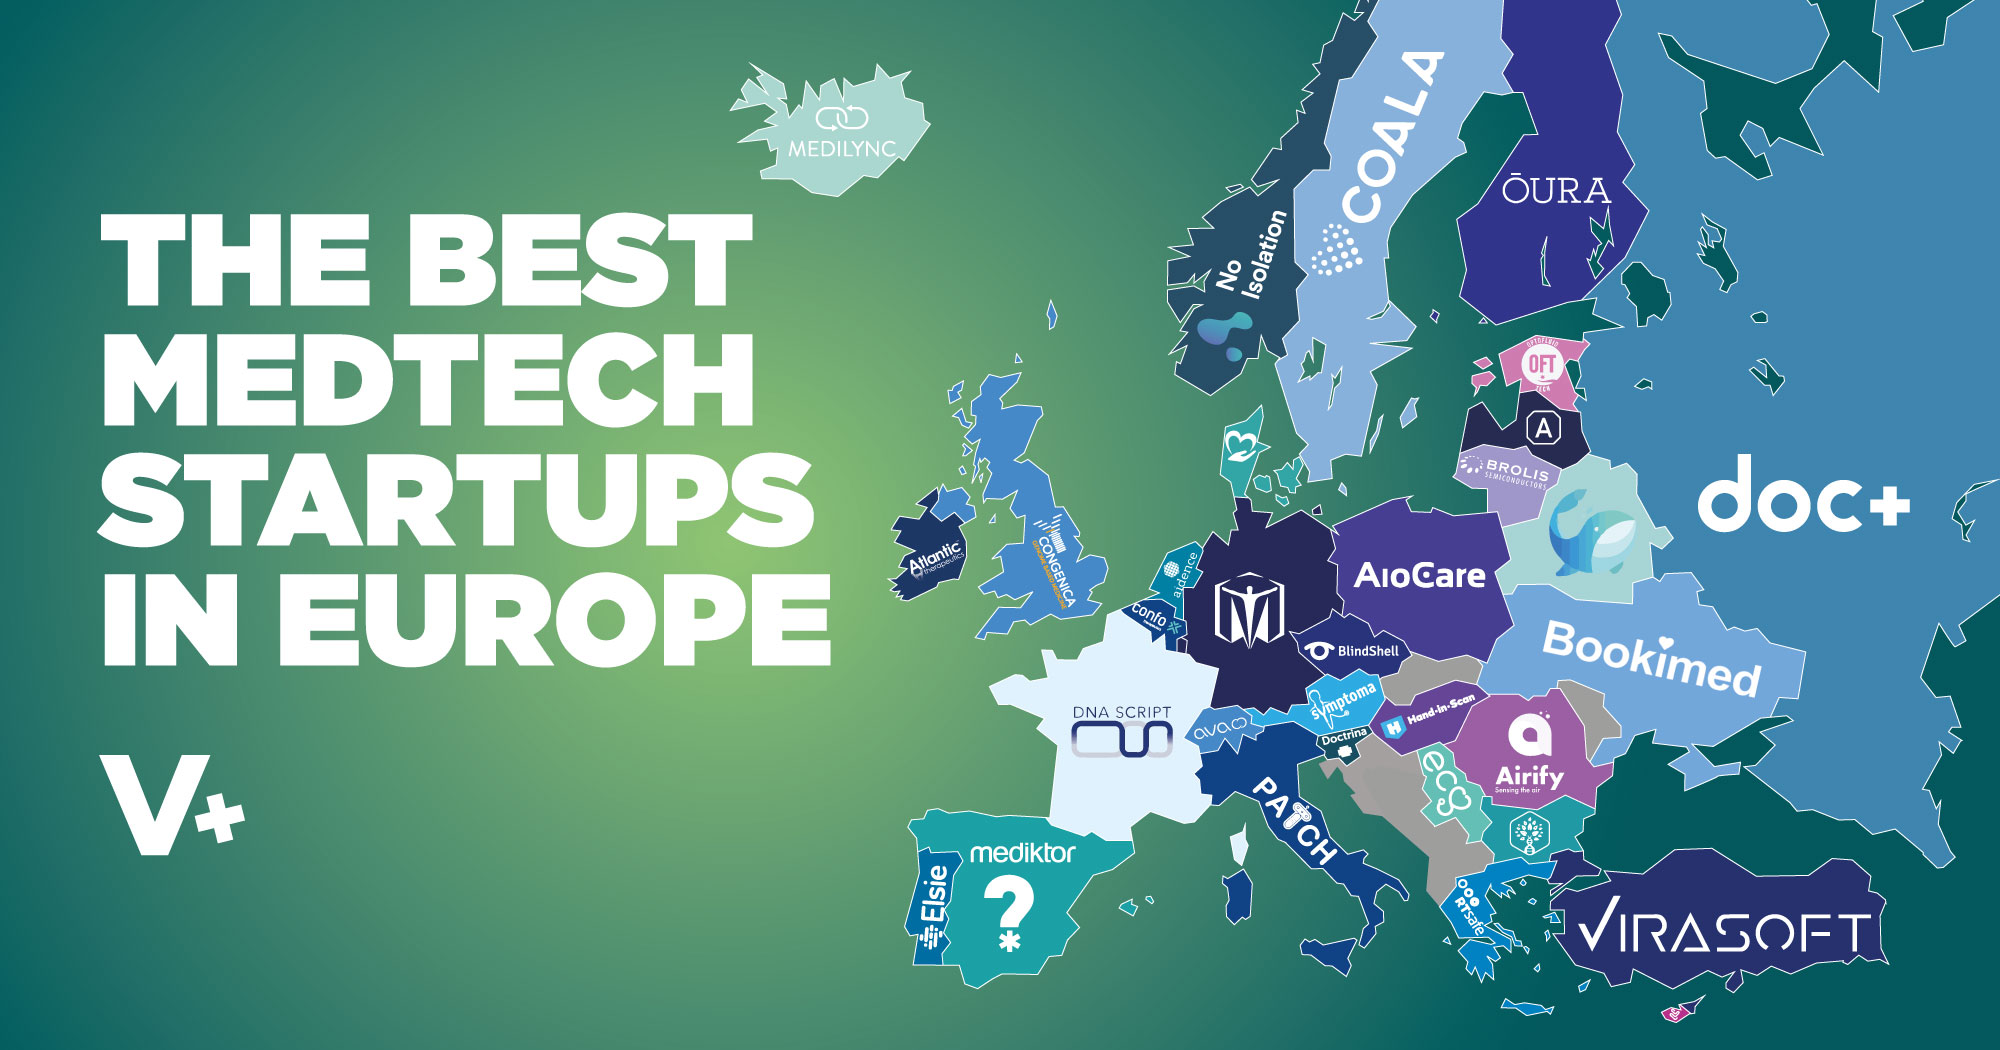 The Best MedTech Startups in Europe